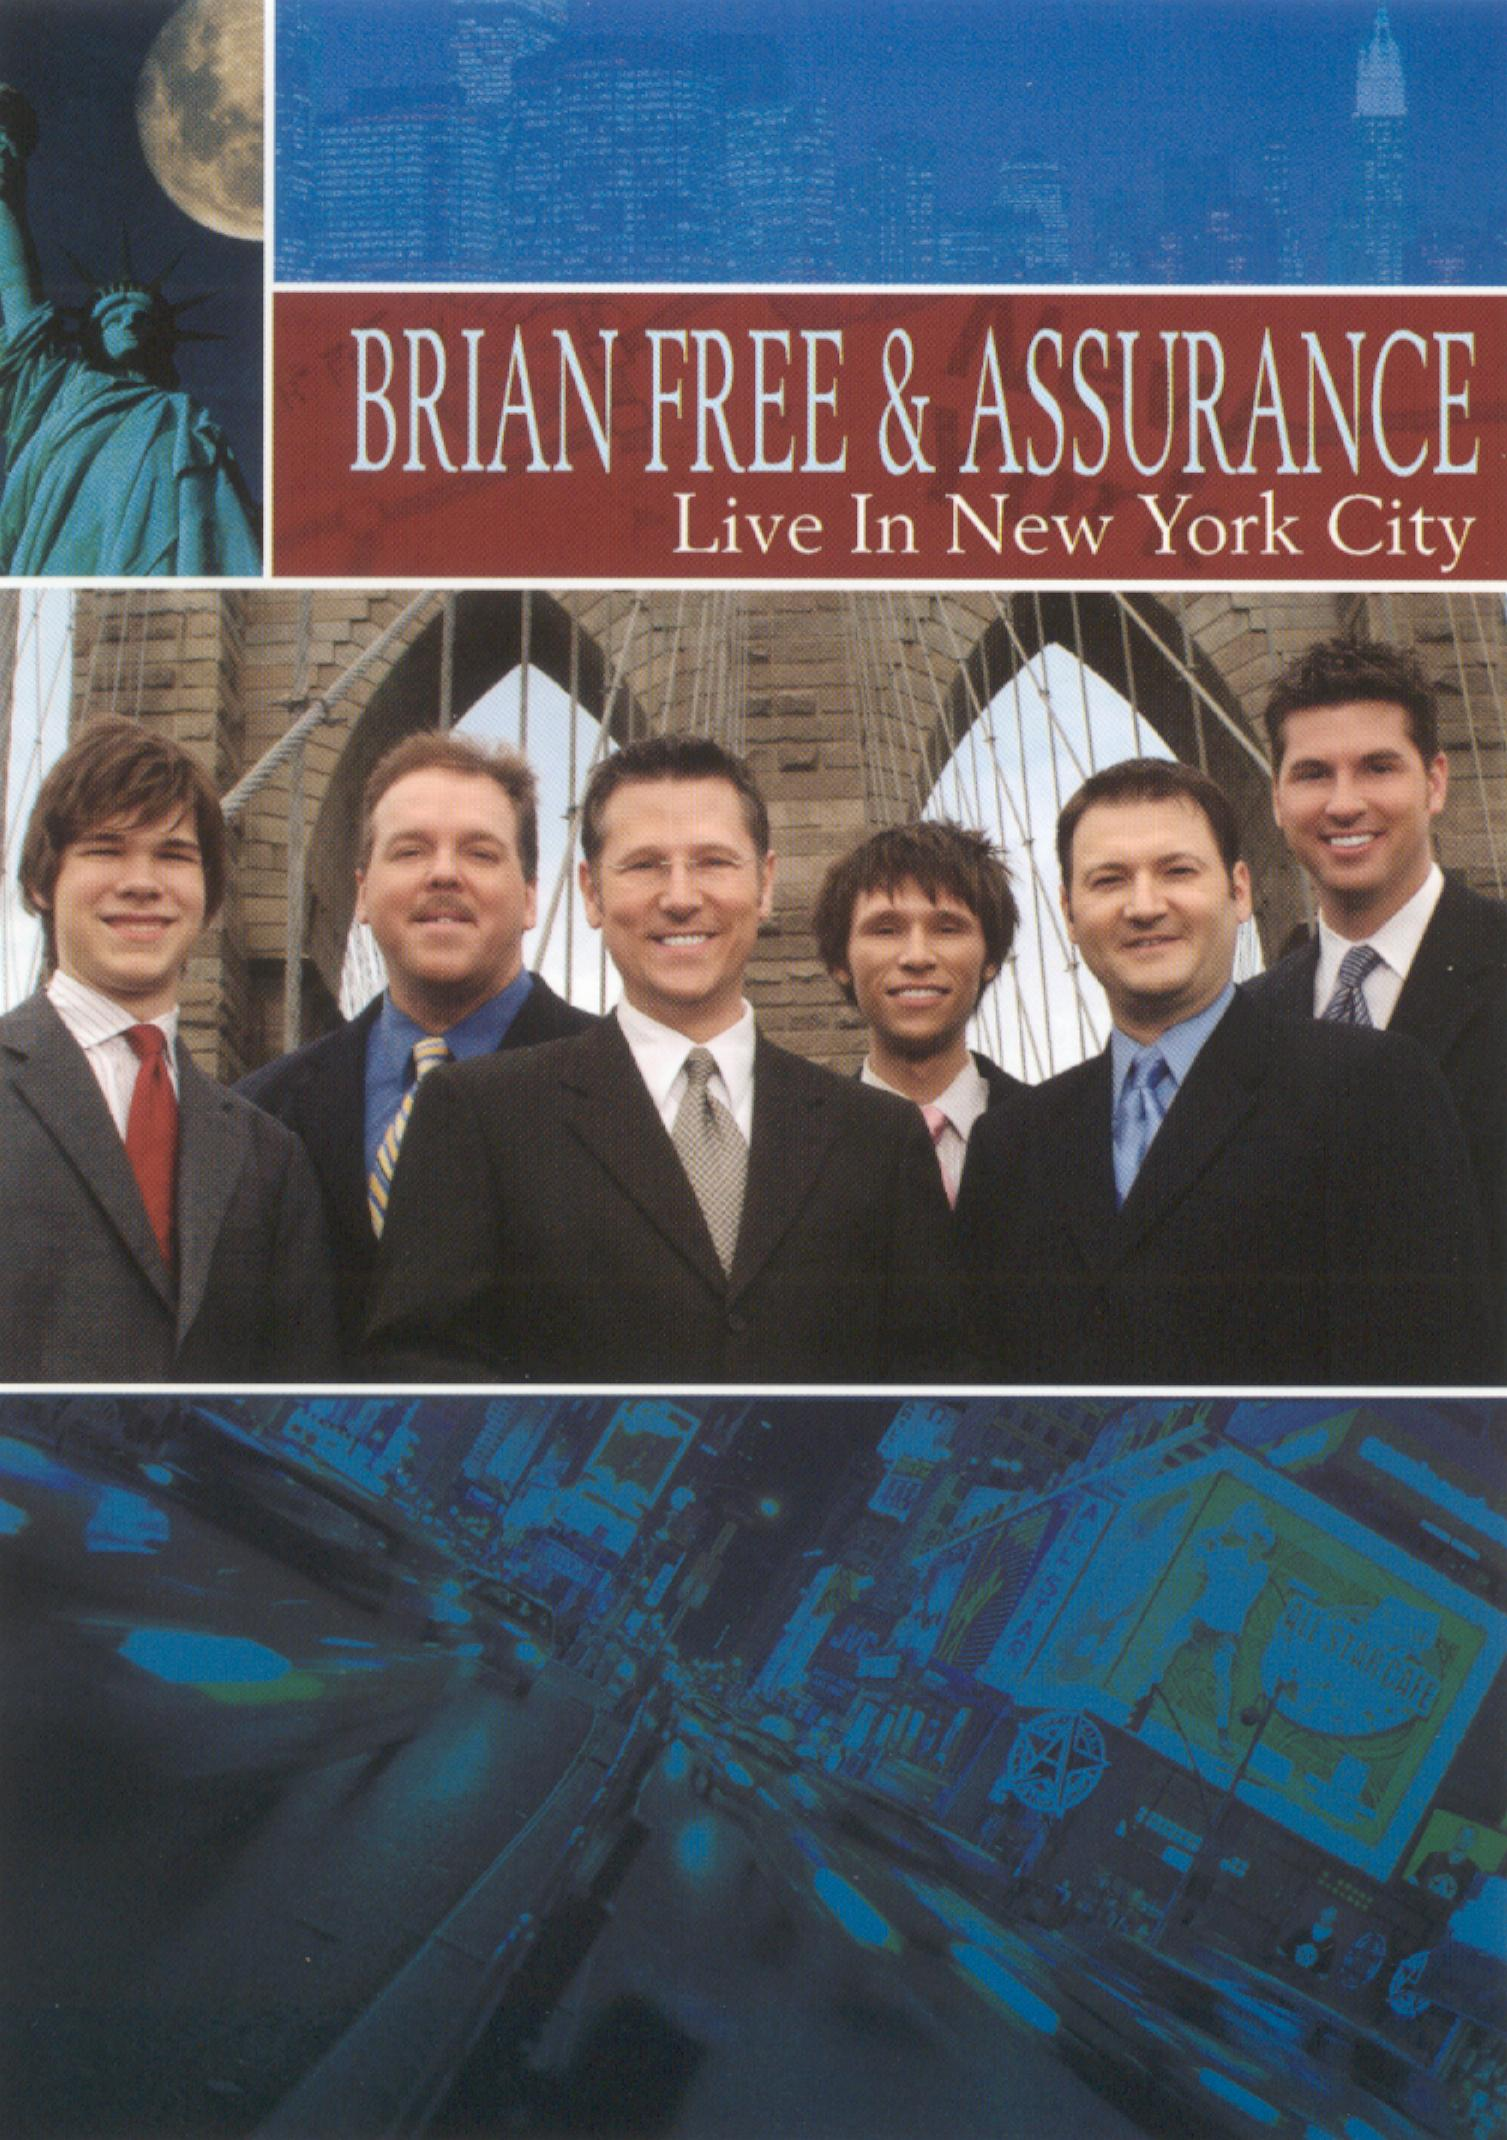 Brian Free & Assurance: Live In New York City